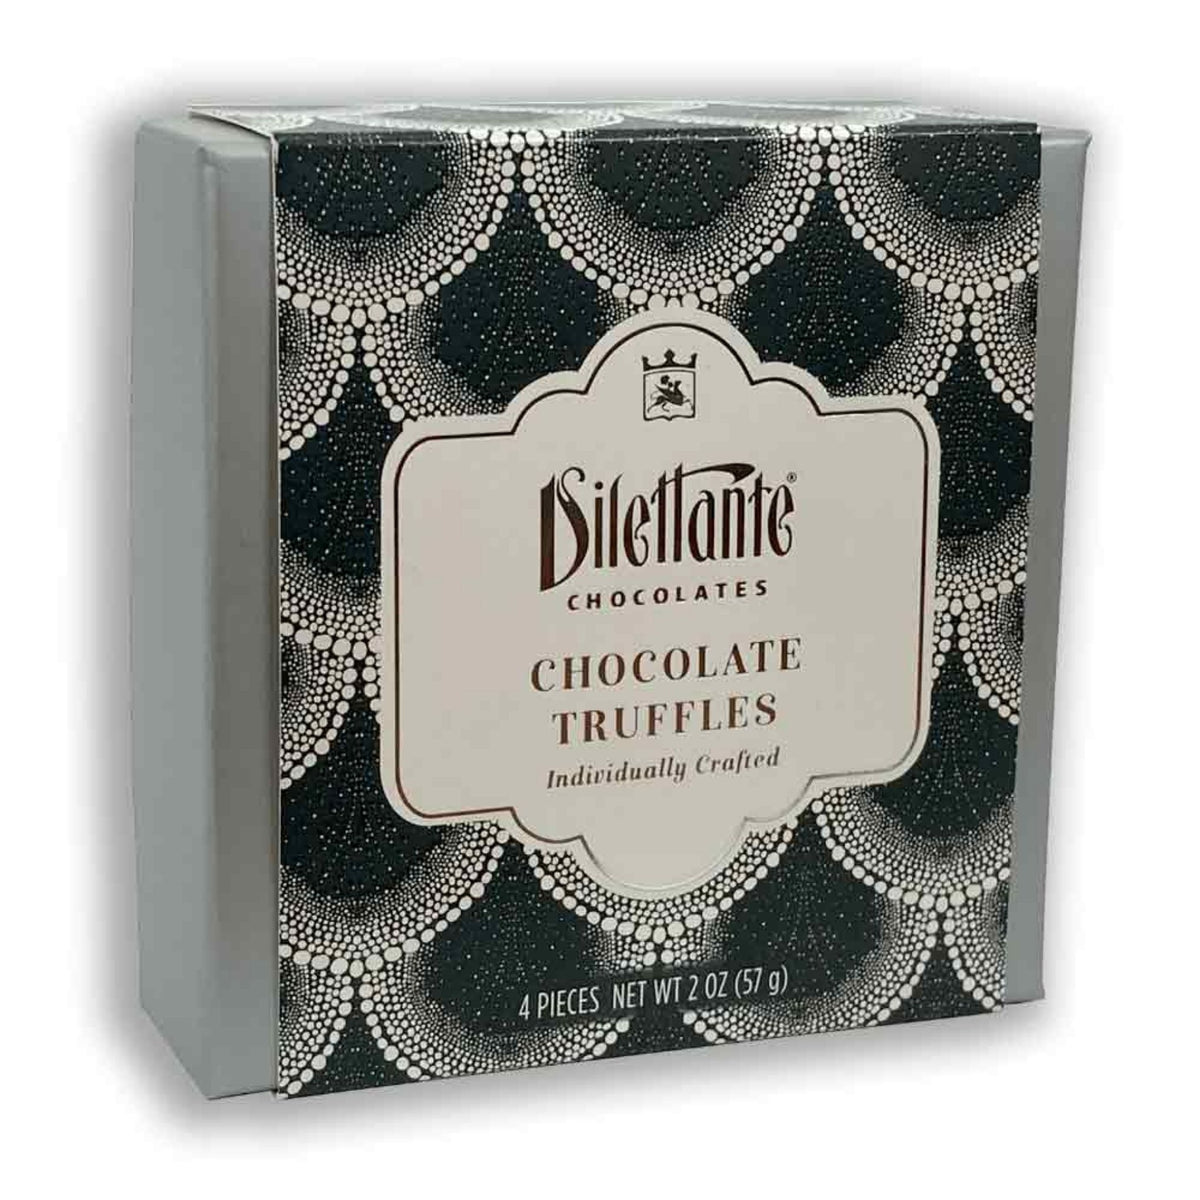 Dilettante Chocolates Individually Crafted chocolate Truffles in a 4-piece black gift box